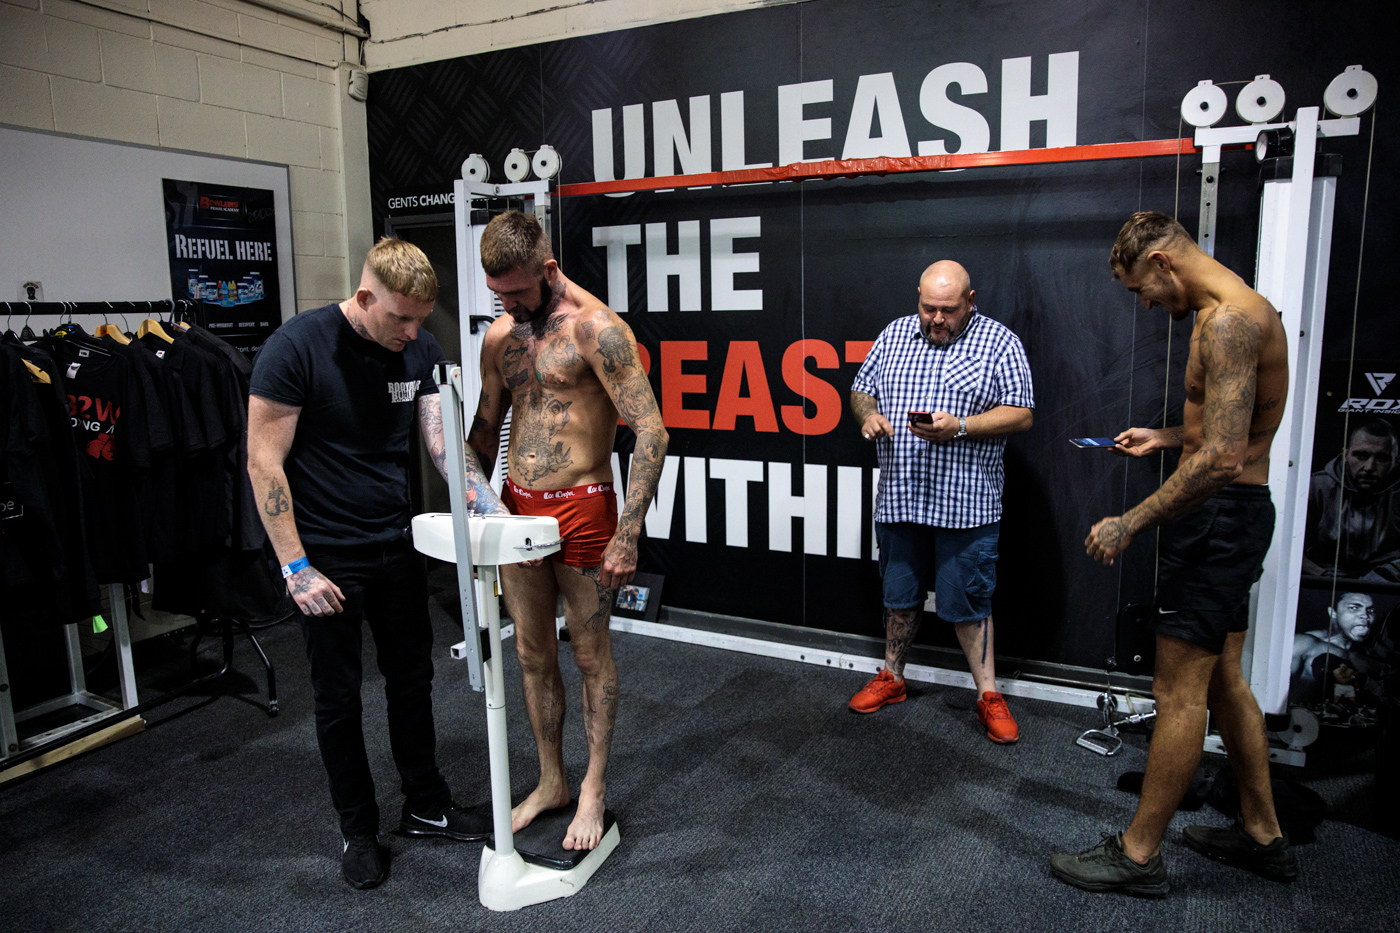 MANCHESTER, ENGLAND: Bare-knuckle boxers weigh-in ahead of an Ultimate Bare Knuckle Boxing (UBKB) event at Bowlers Exhibition Centre on August 4, 2018.